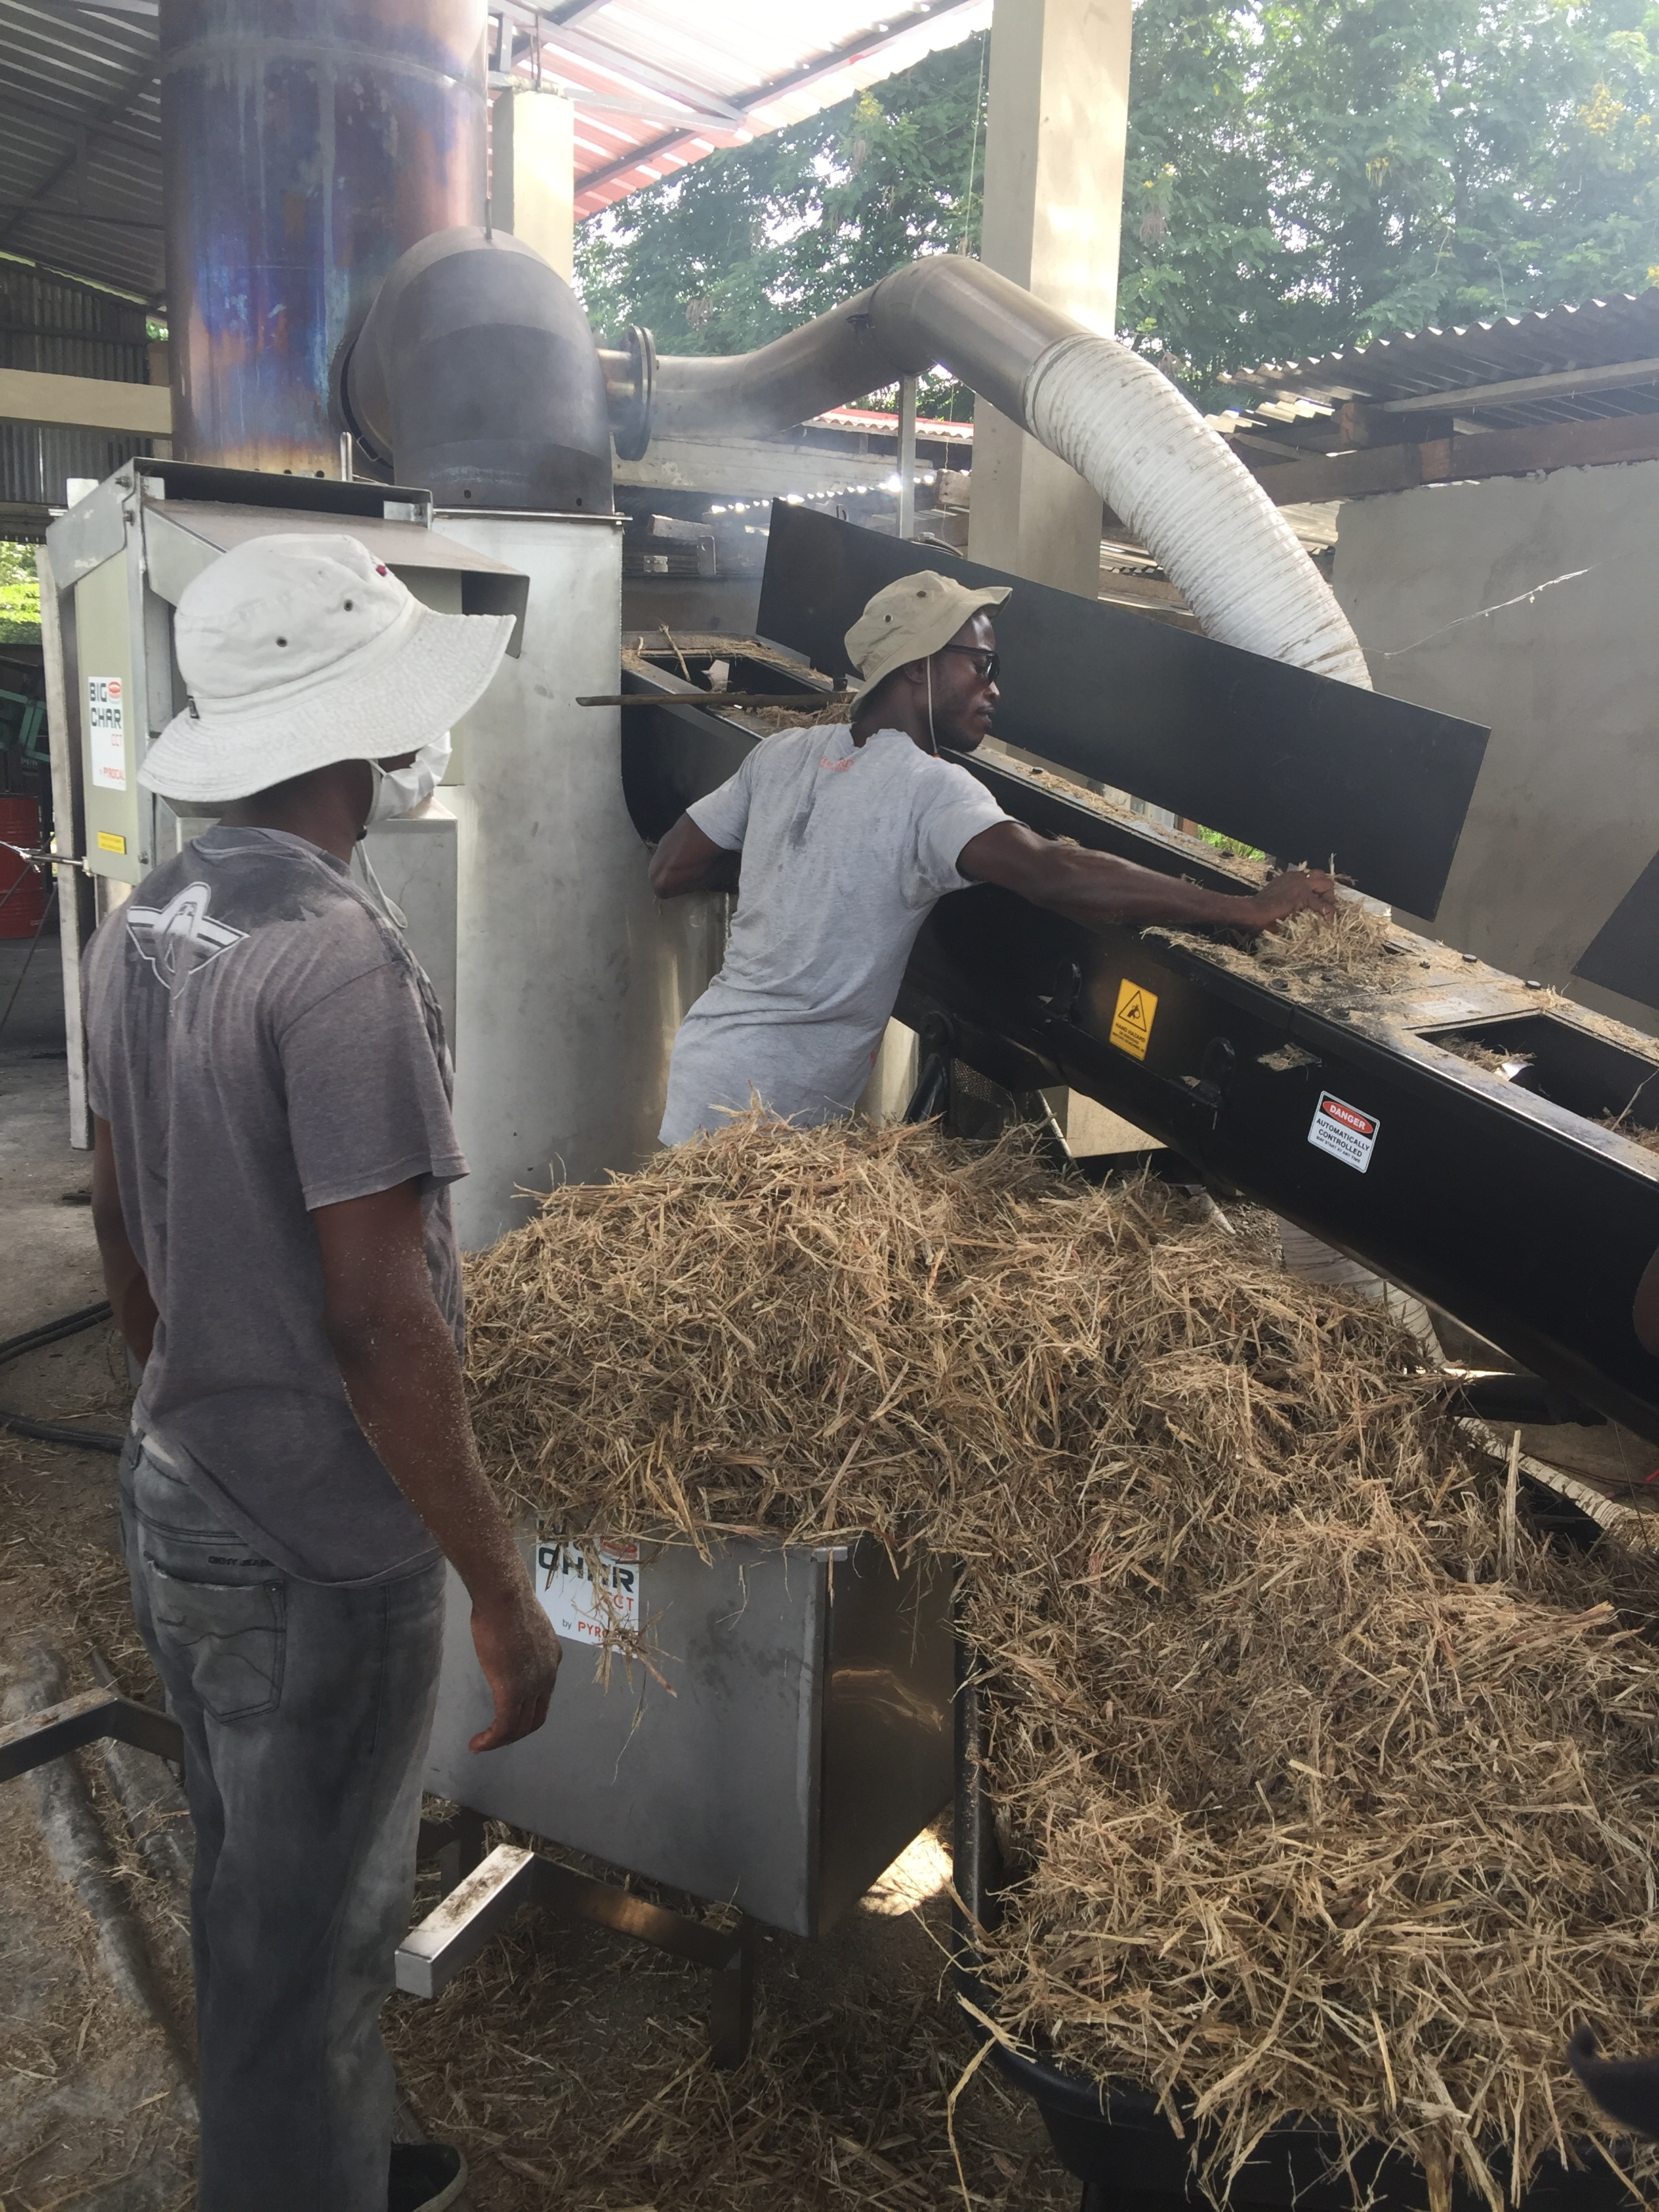 4. The agro-waste is loaded into the pyrolizer.